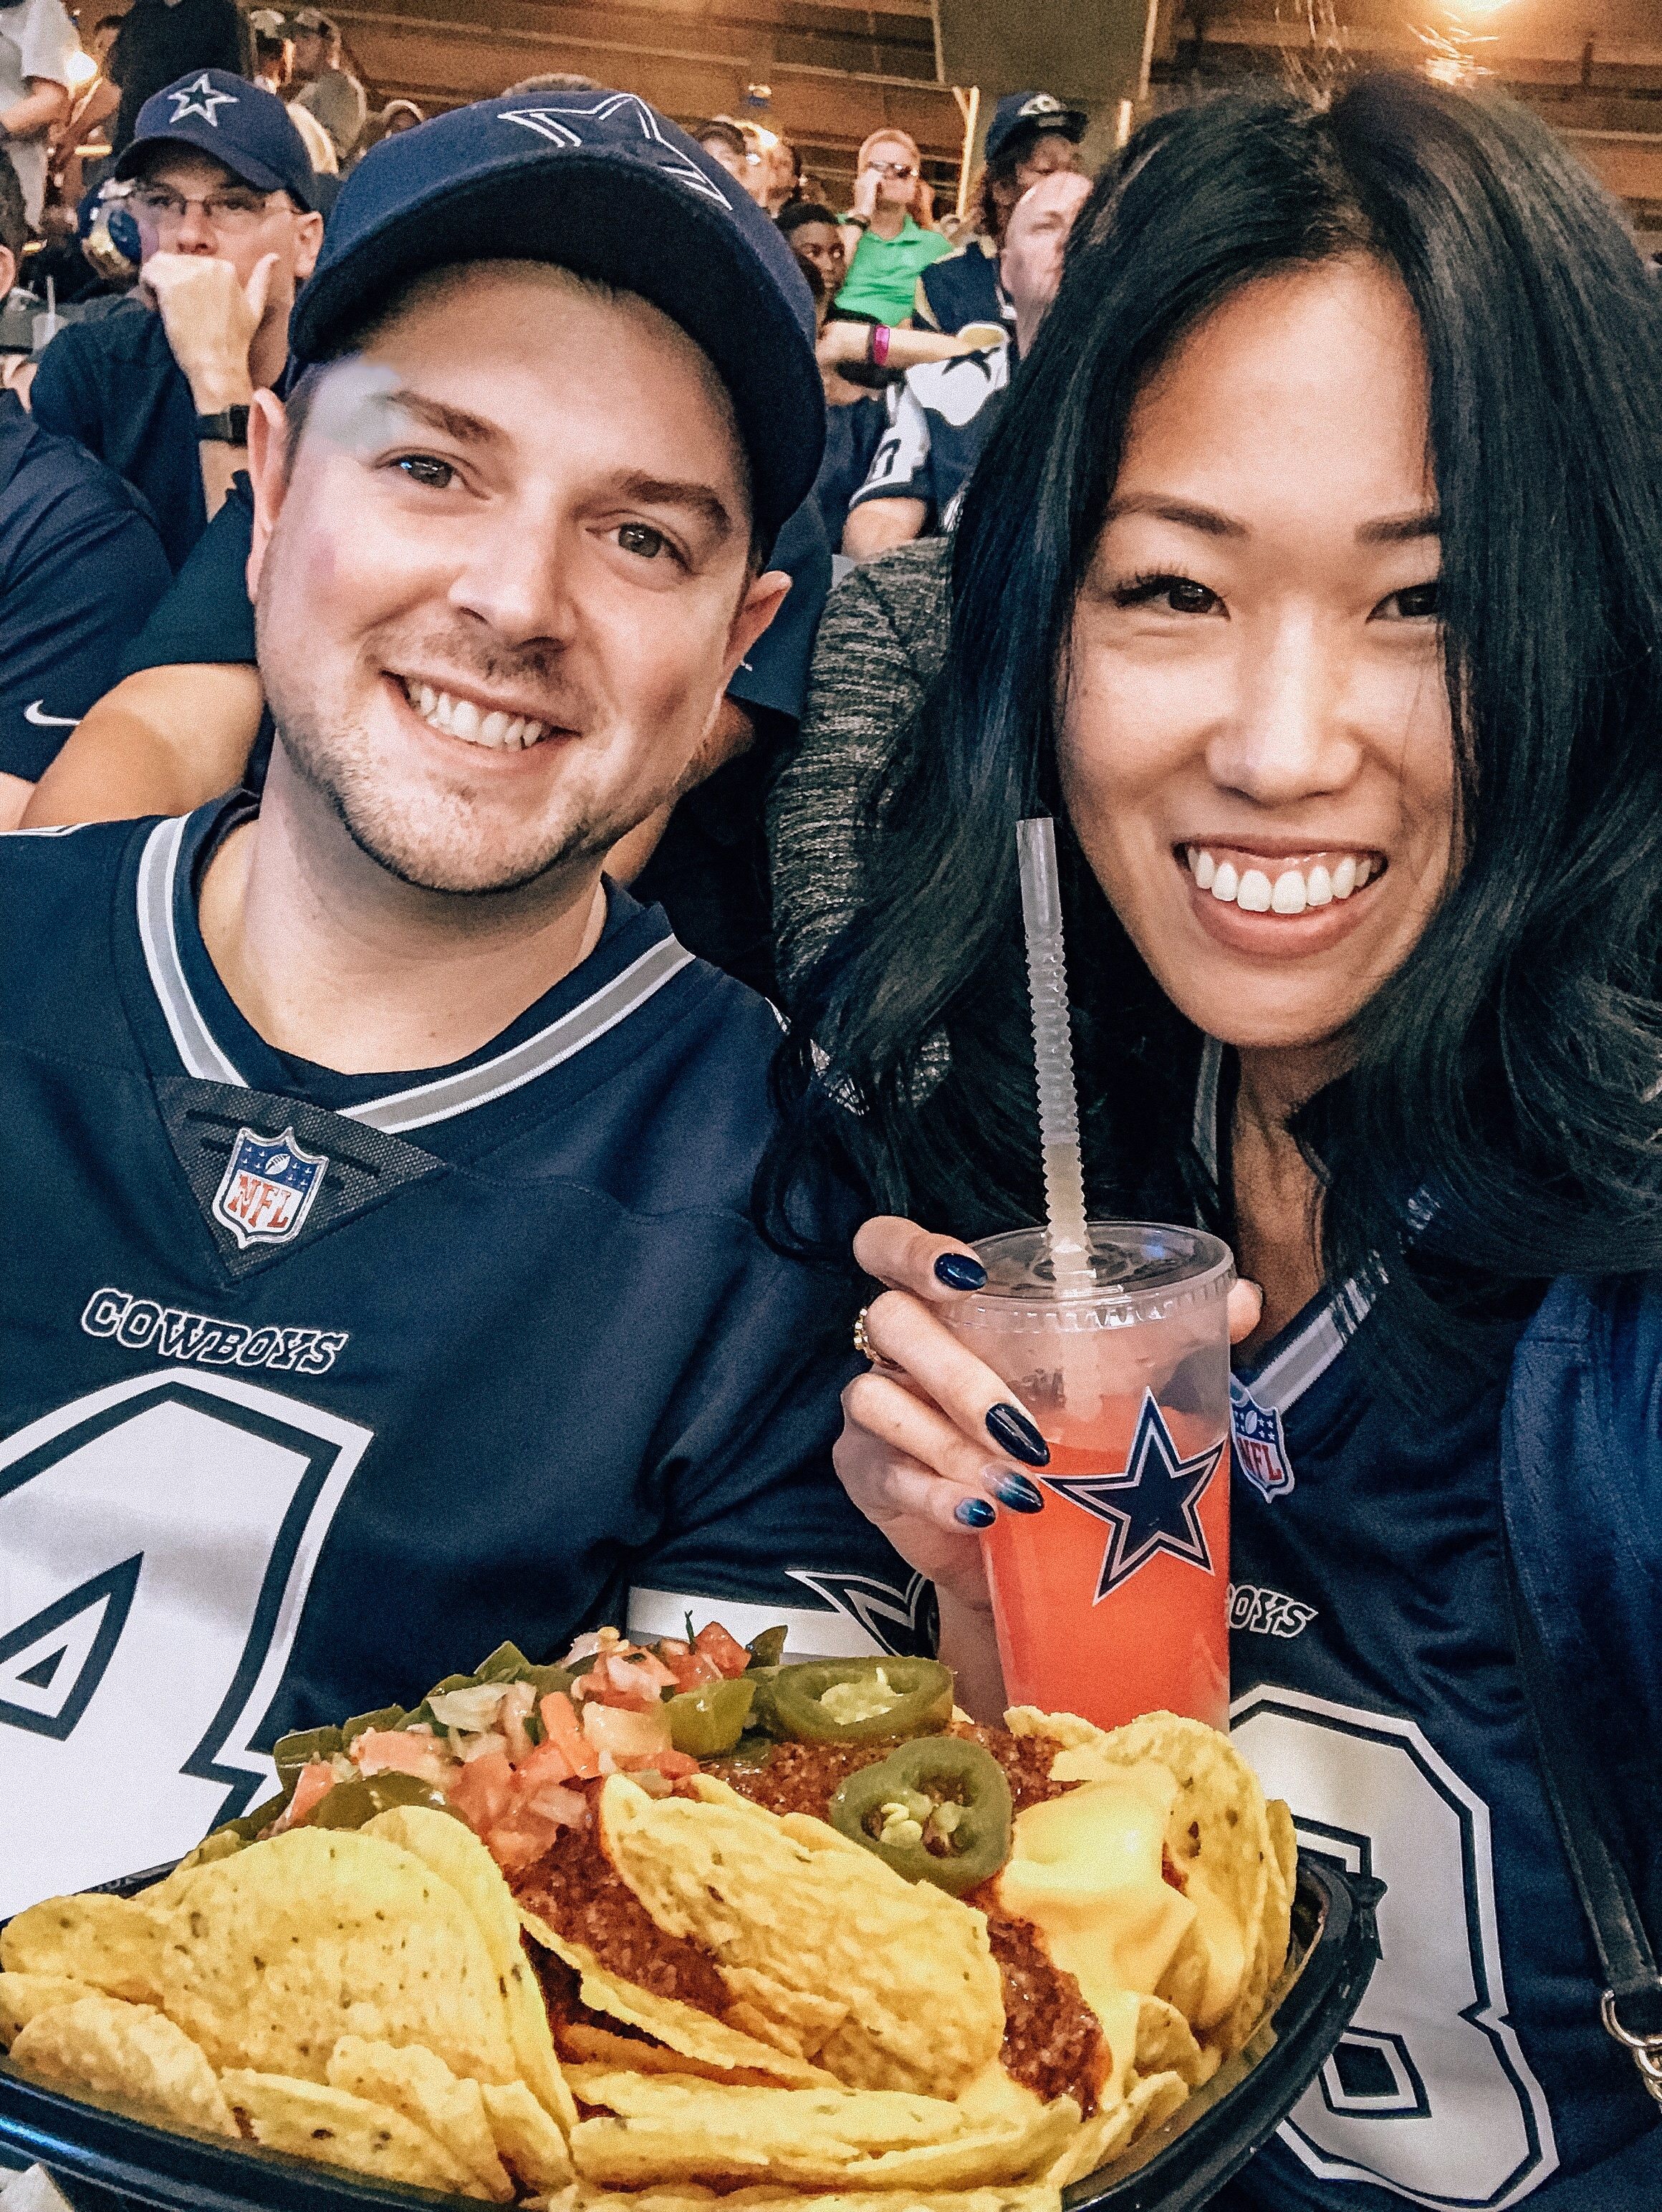 Food and drinks at the Cowboys game